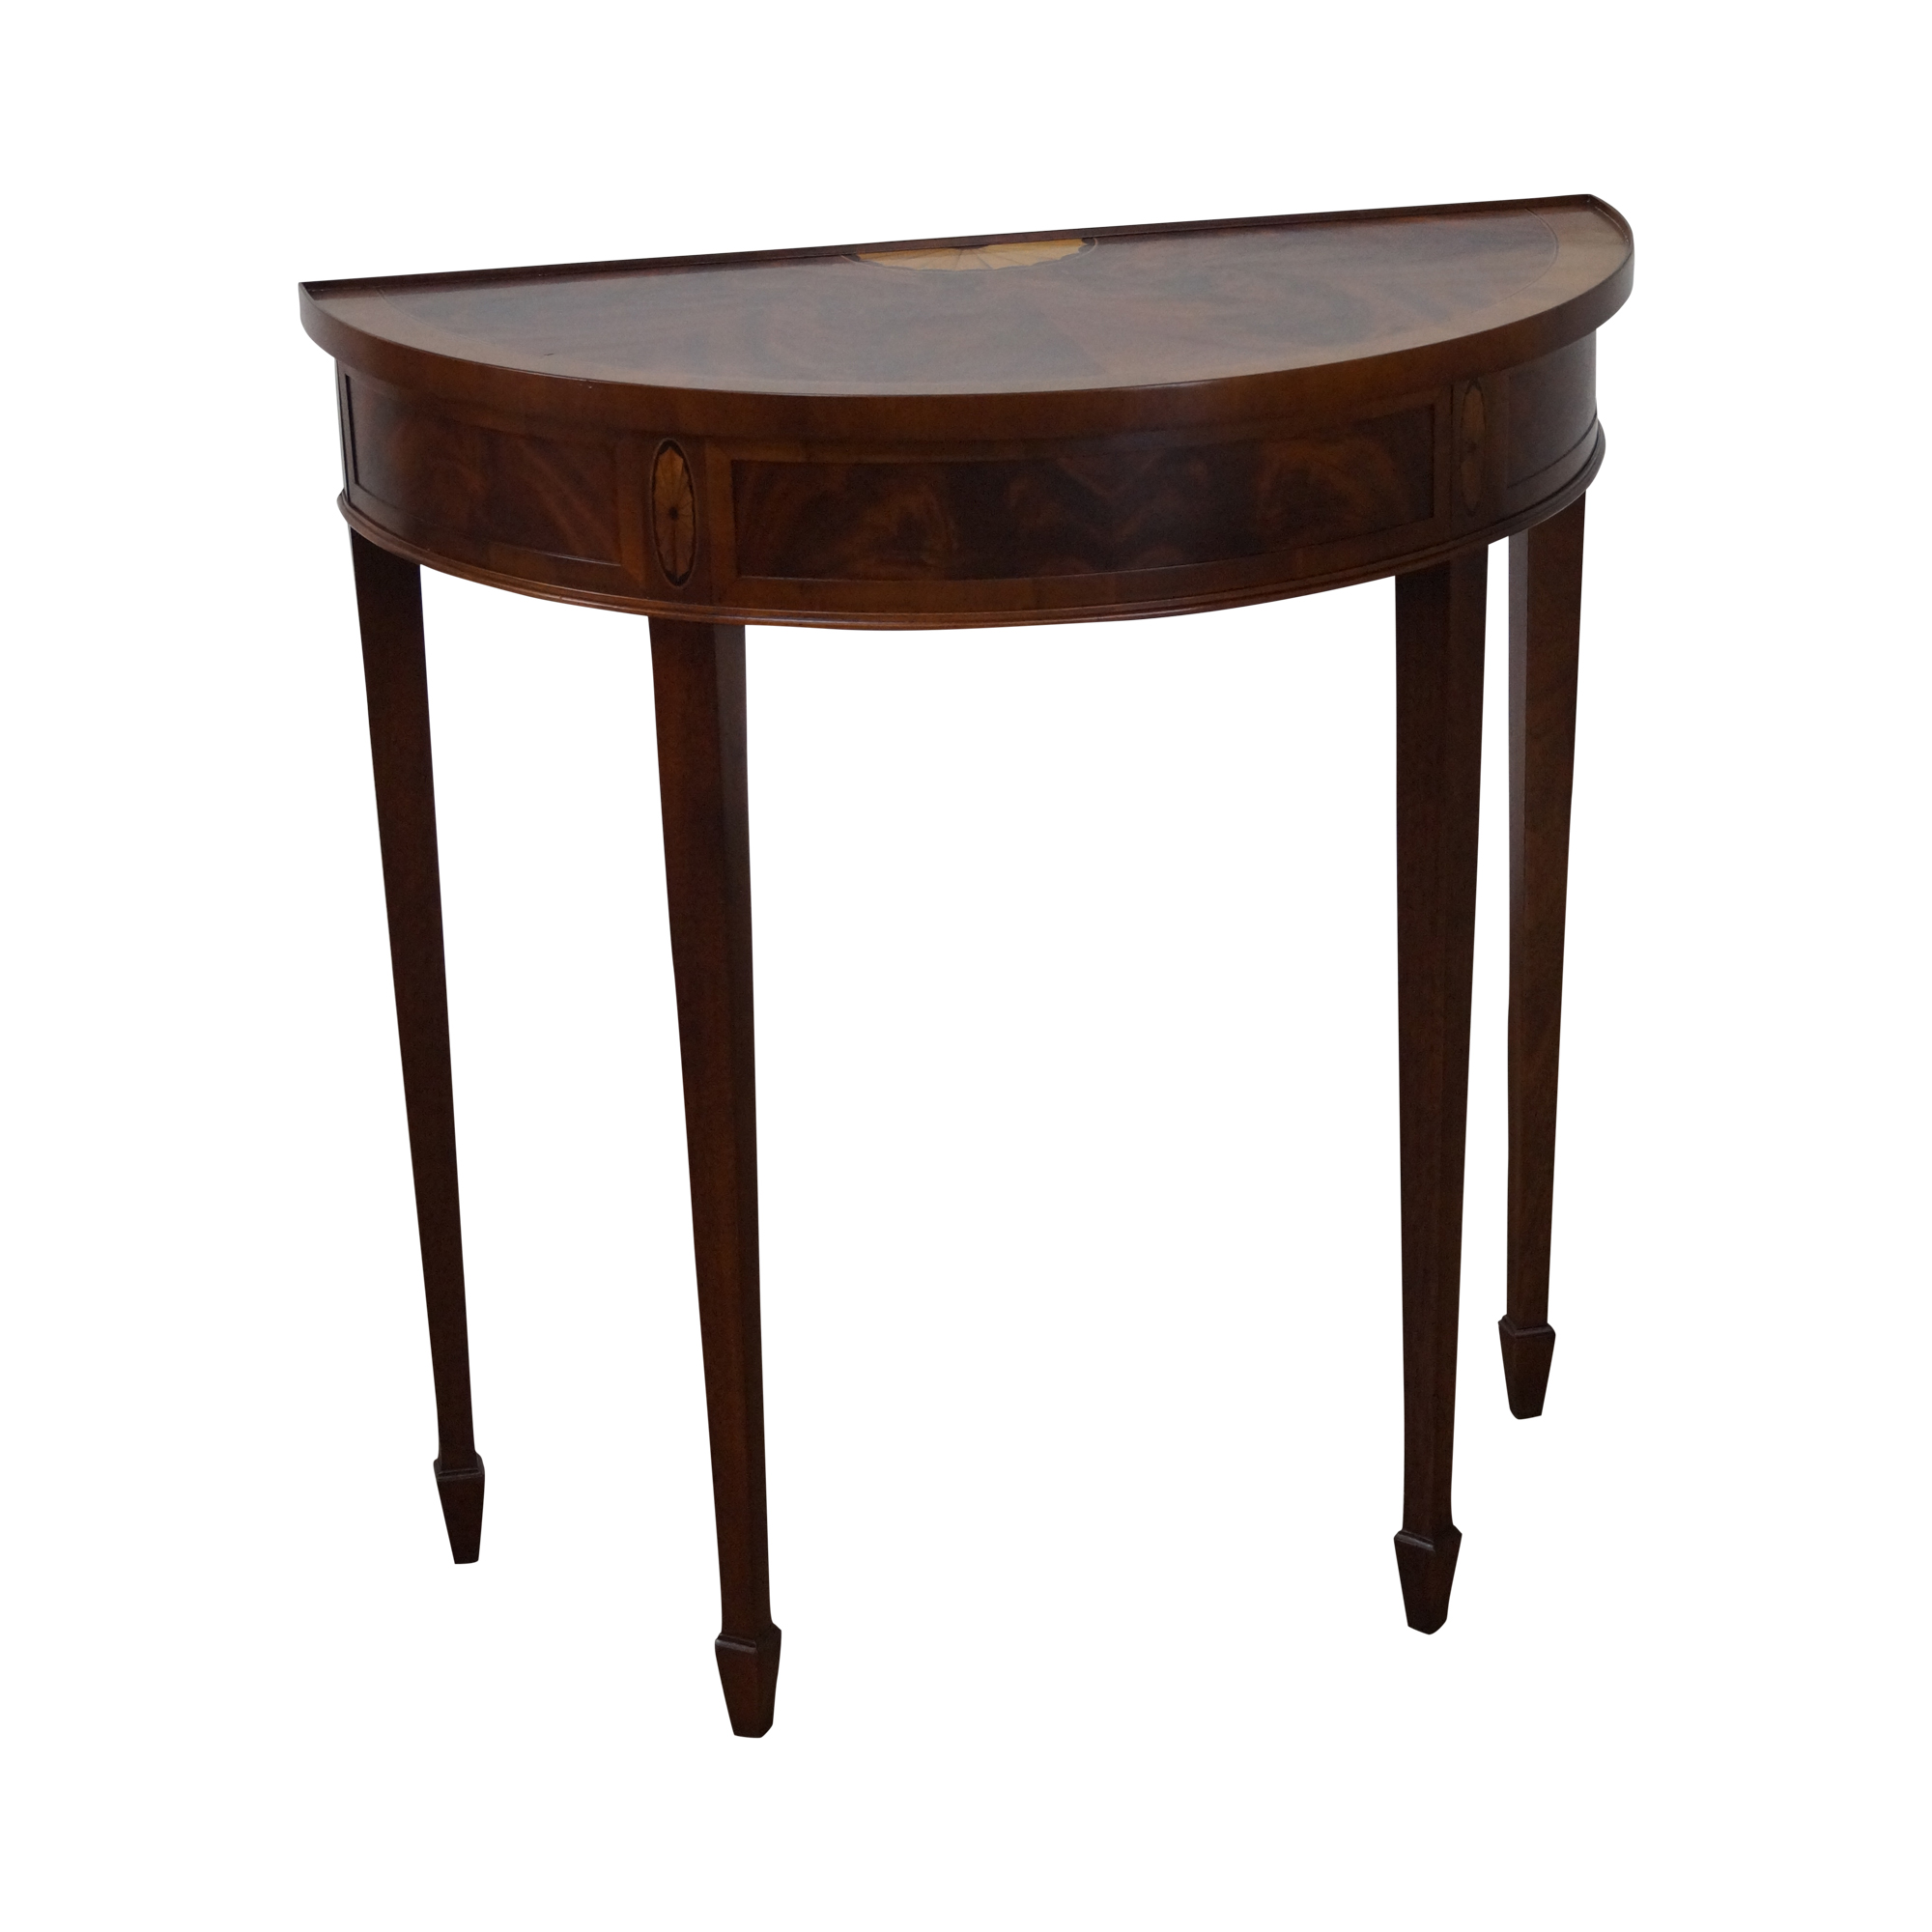 Hekman mahogany yew wood inlaid console table chairish for Yew sofa table